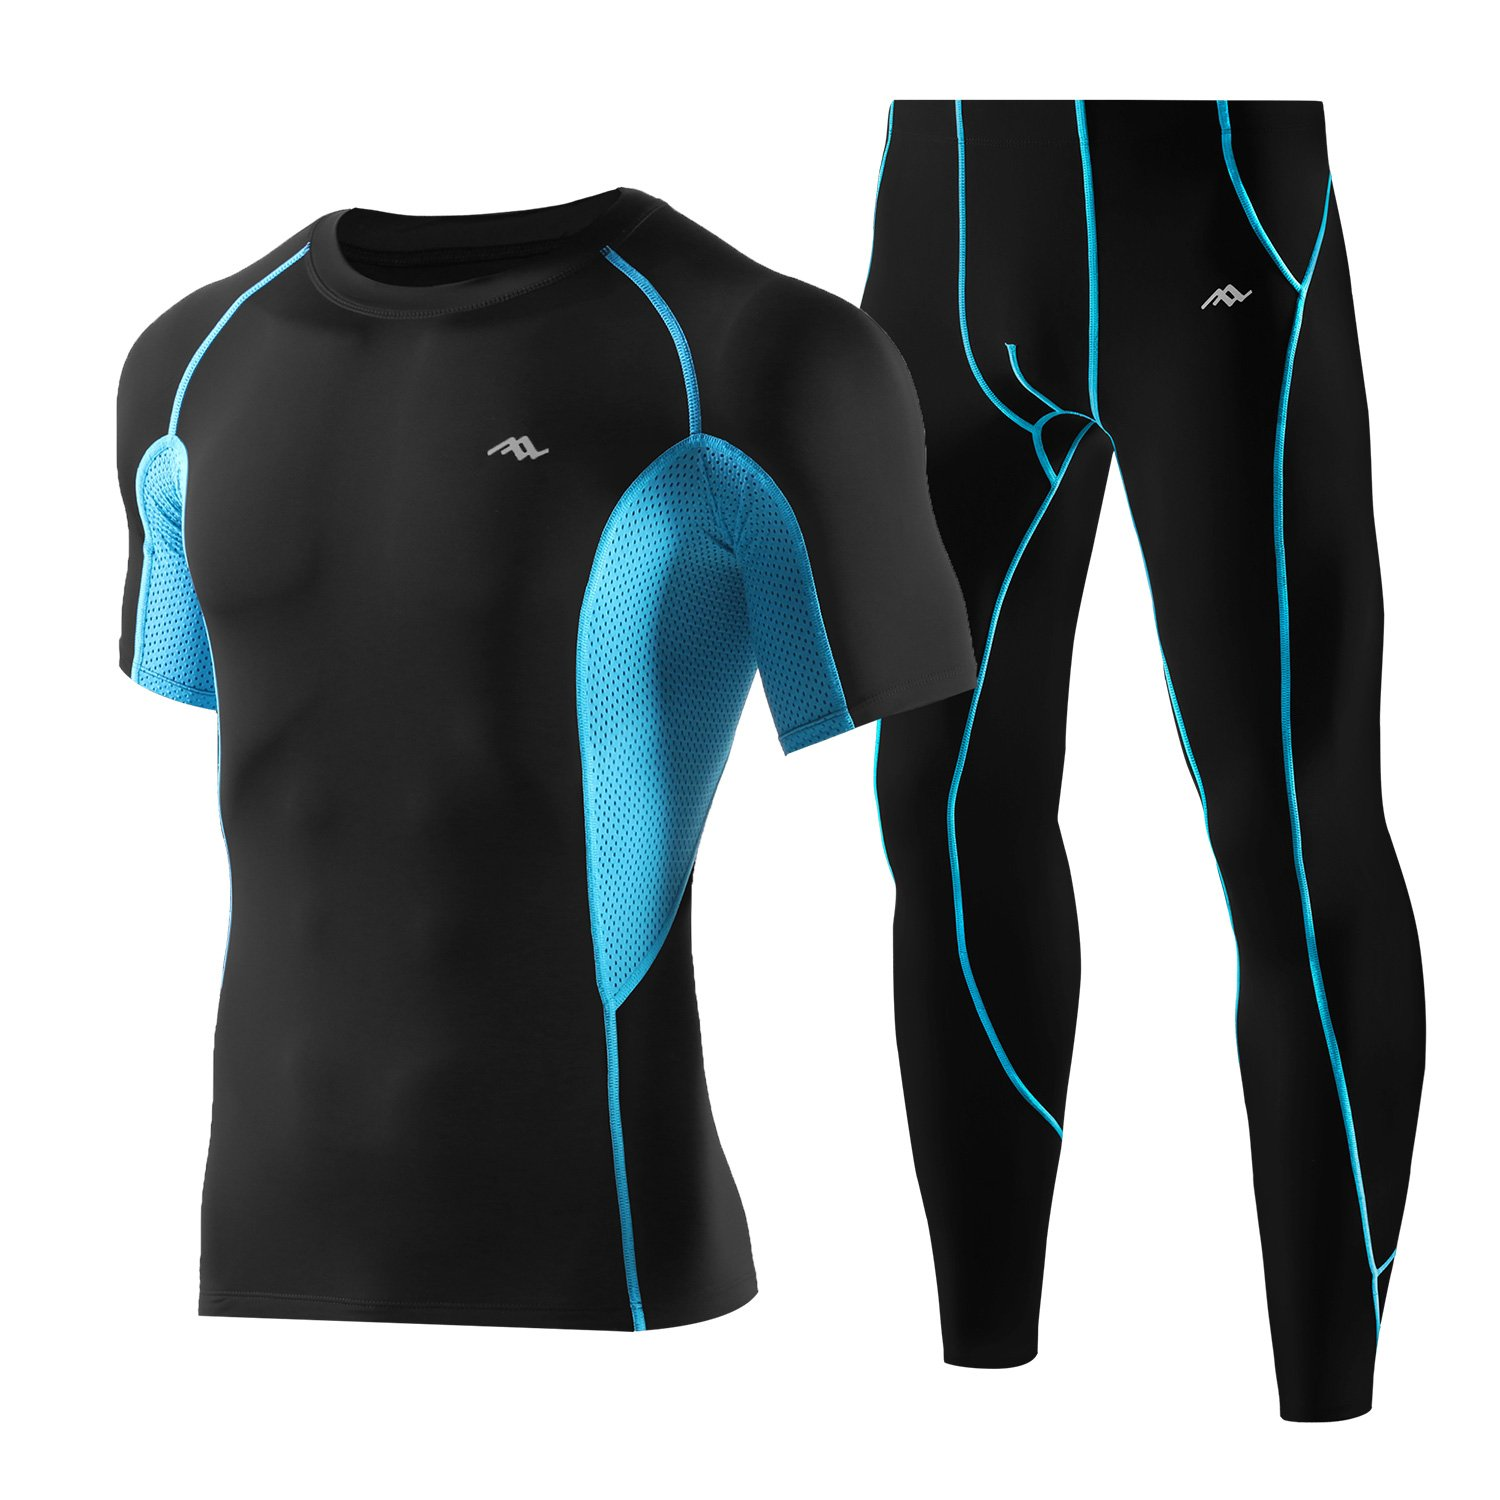 Men's Compression Fitness Sets Quick Dry Short Sleeve Pants Tight Baselayer 2 Pieces Jomago